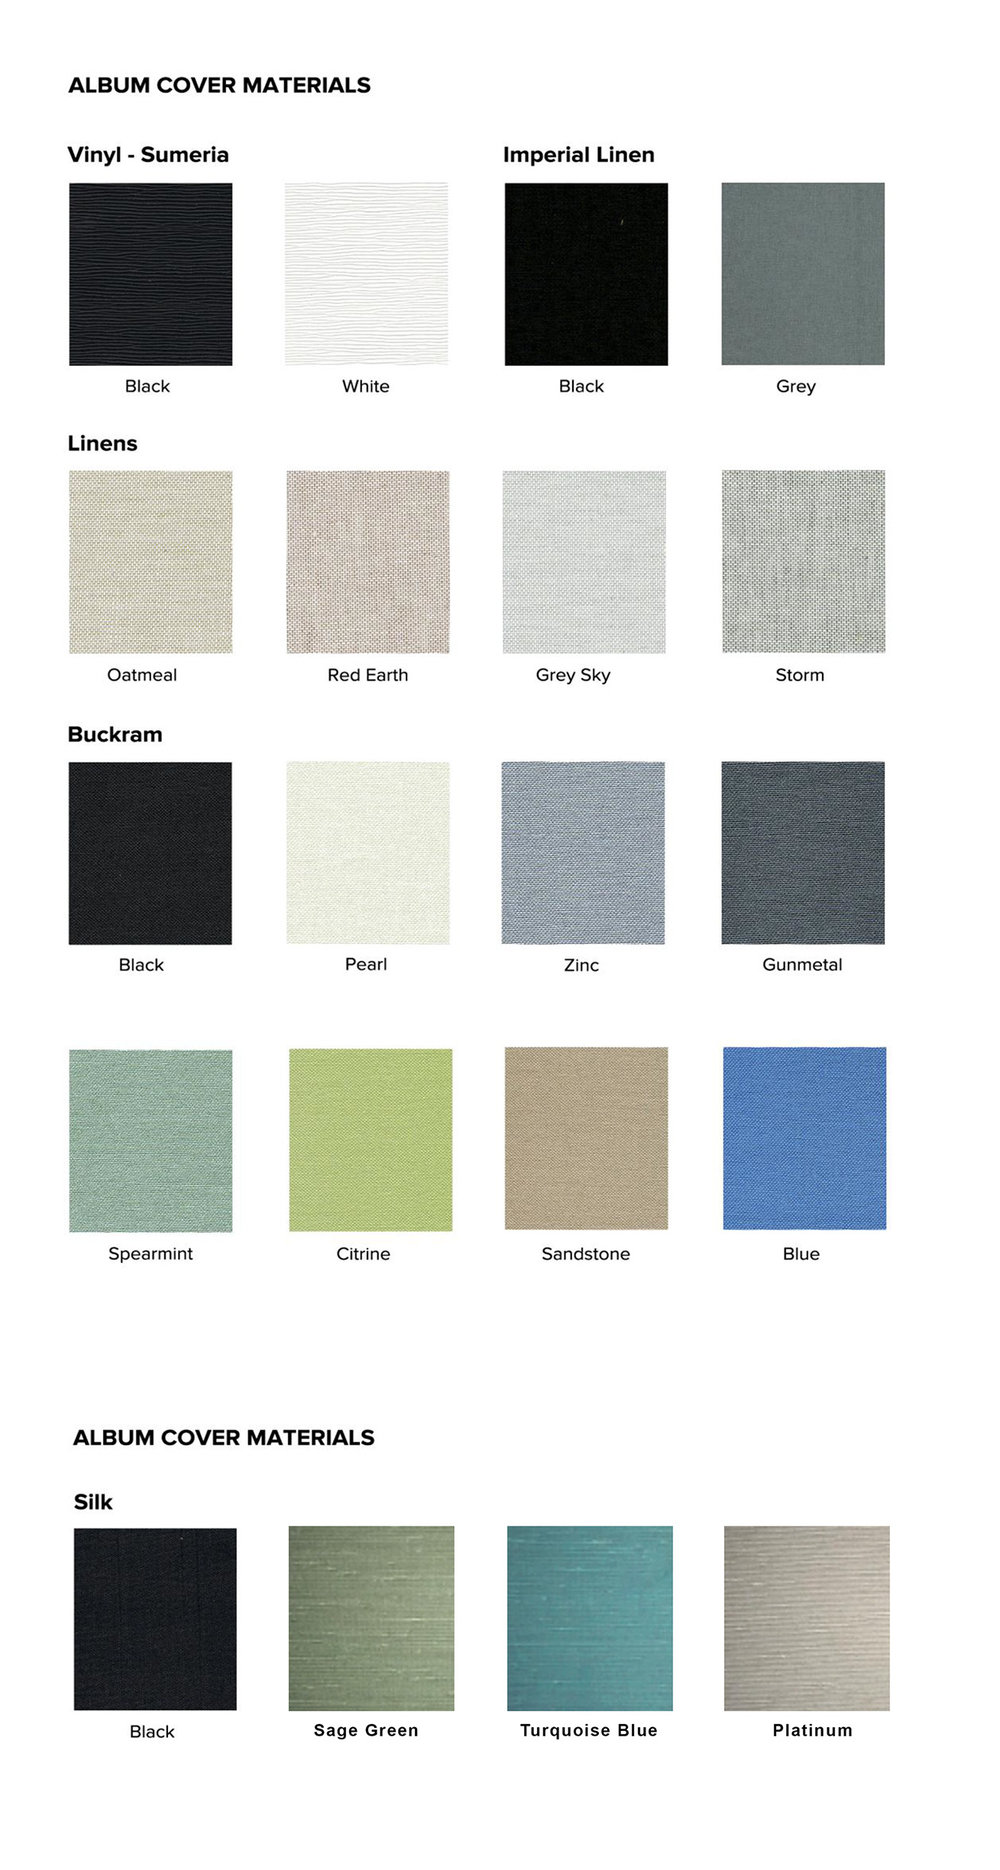 Click to view Vinyl (Sumeria), Linens, Buckram & Silk Covers